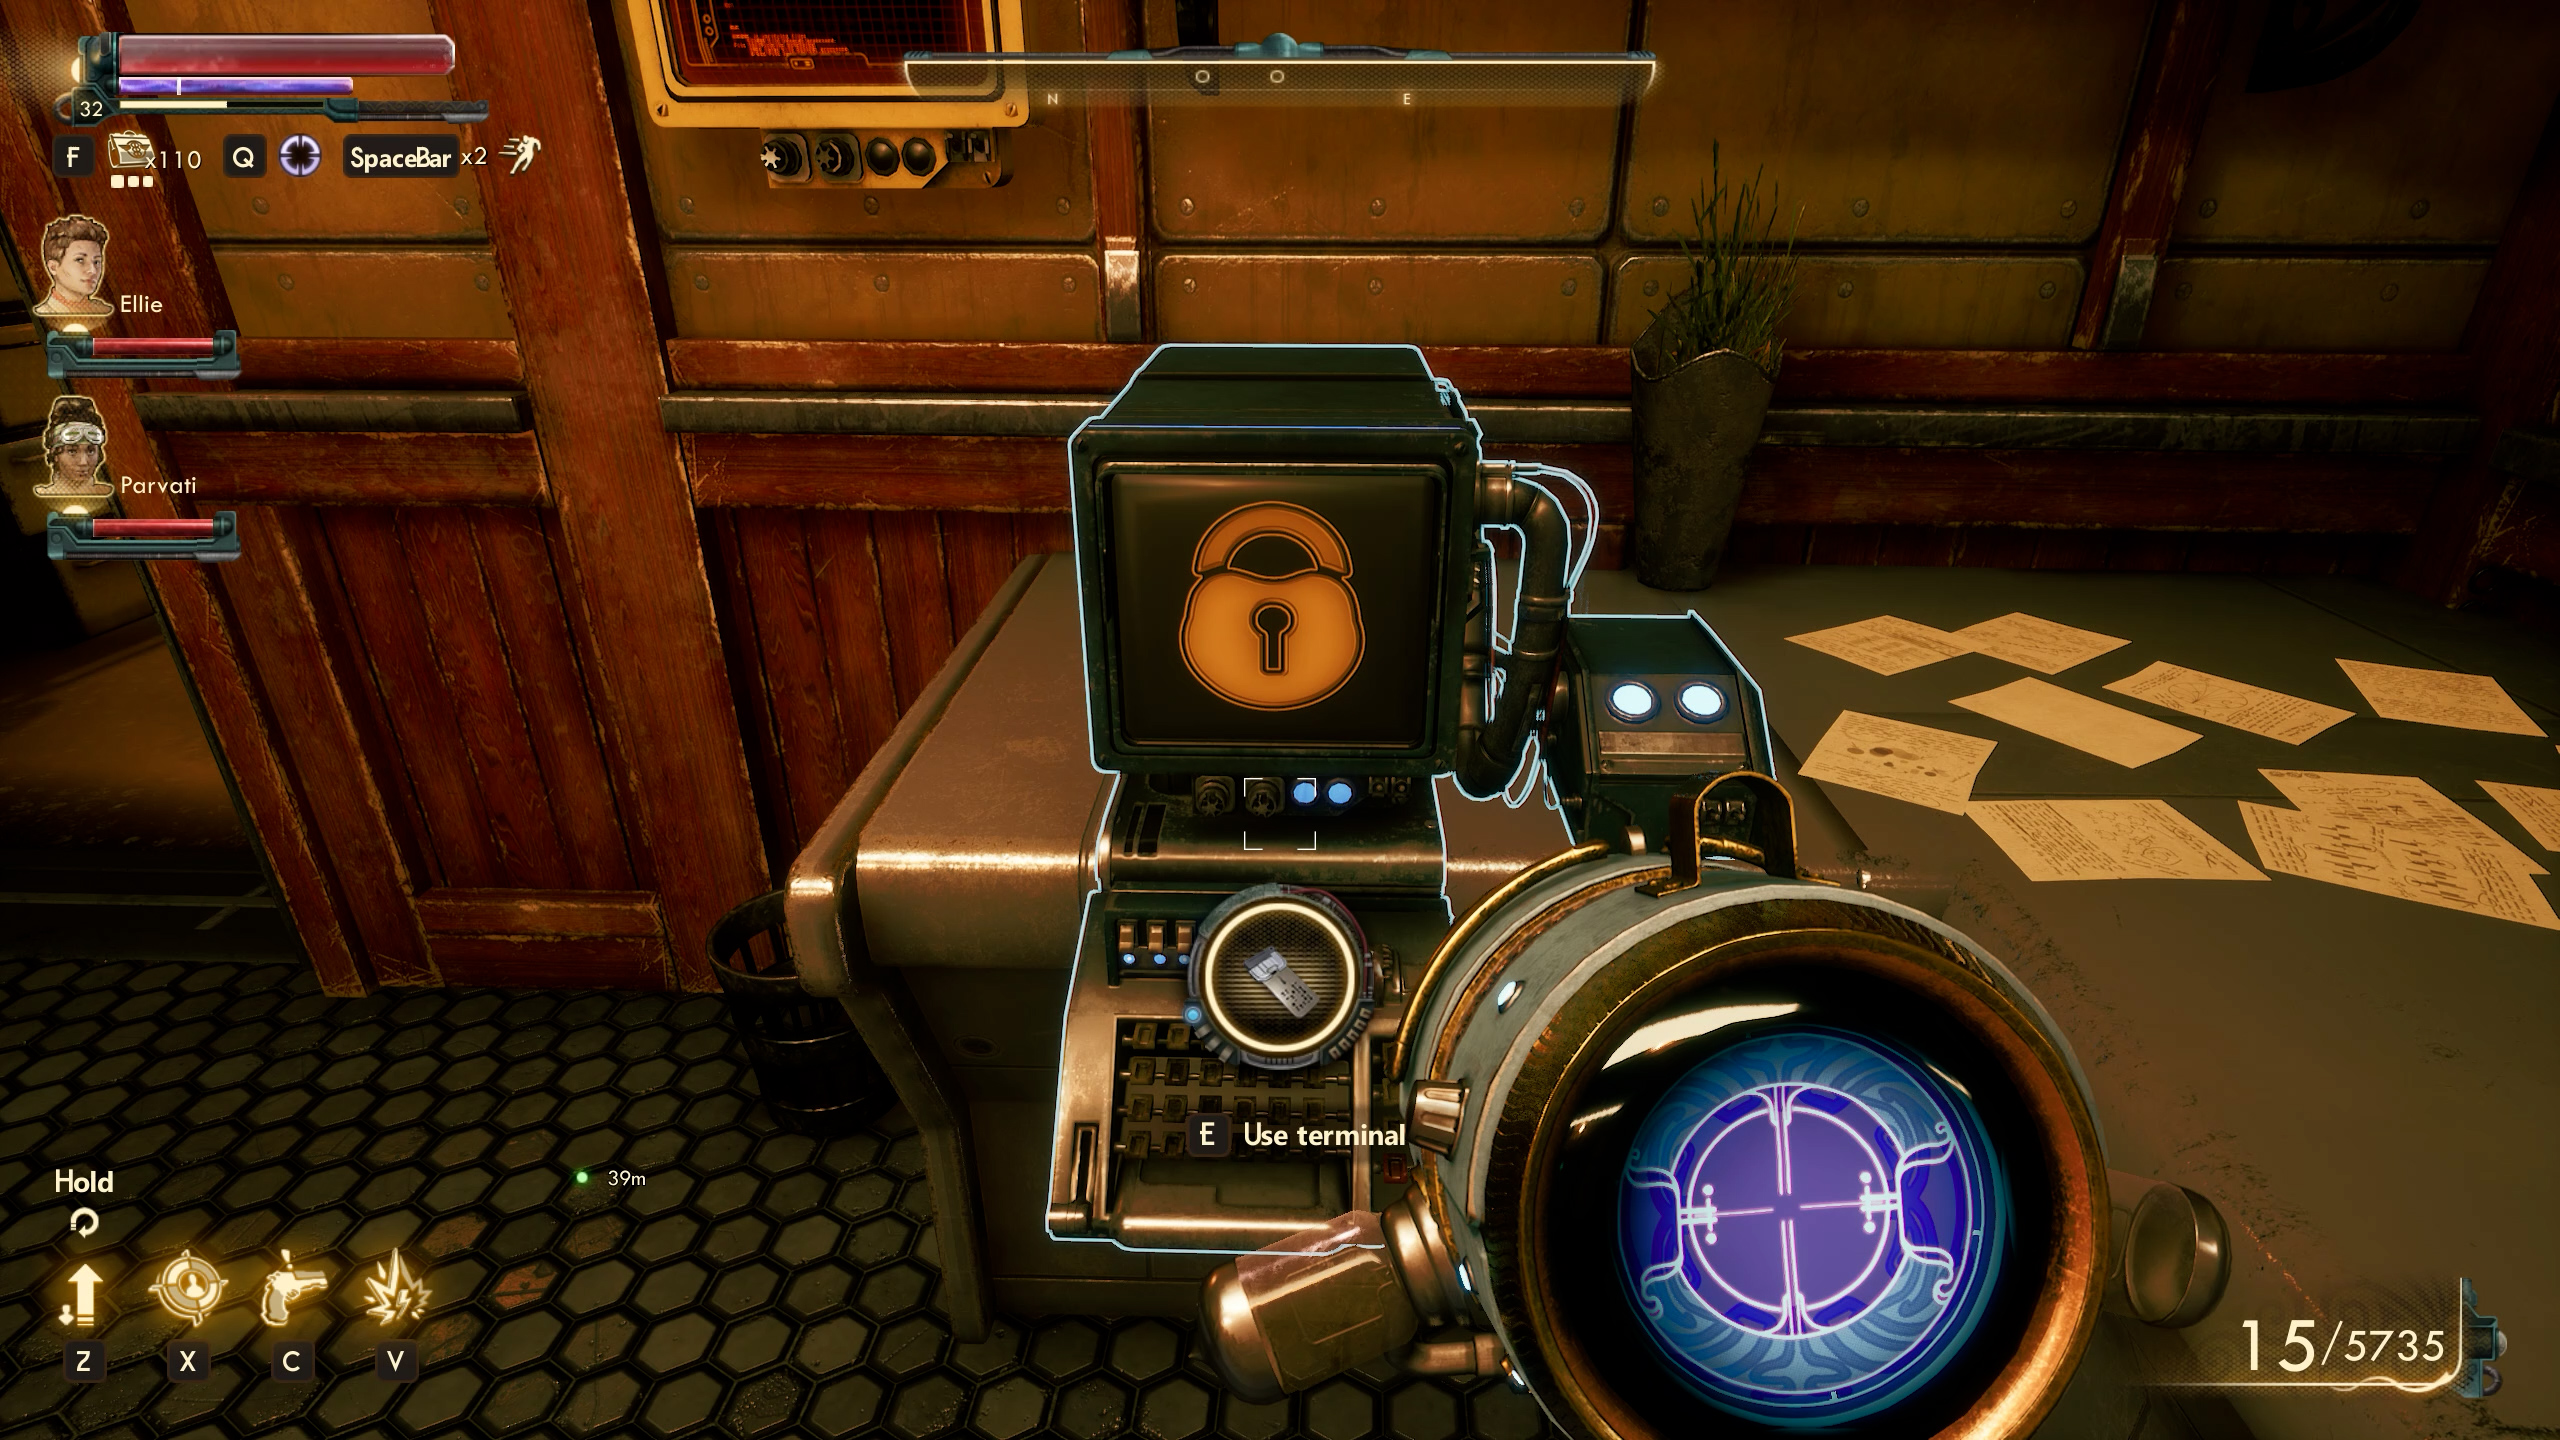 Constabulary Terminal Keycard - The Outer Worlds: Murder on Eridanos